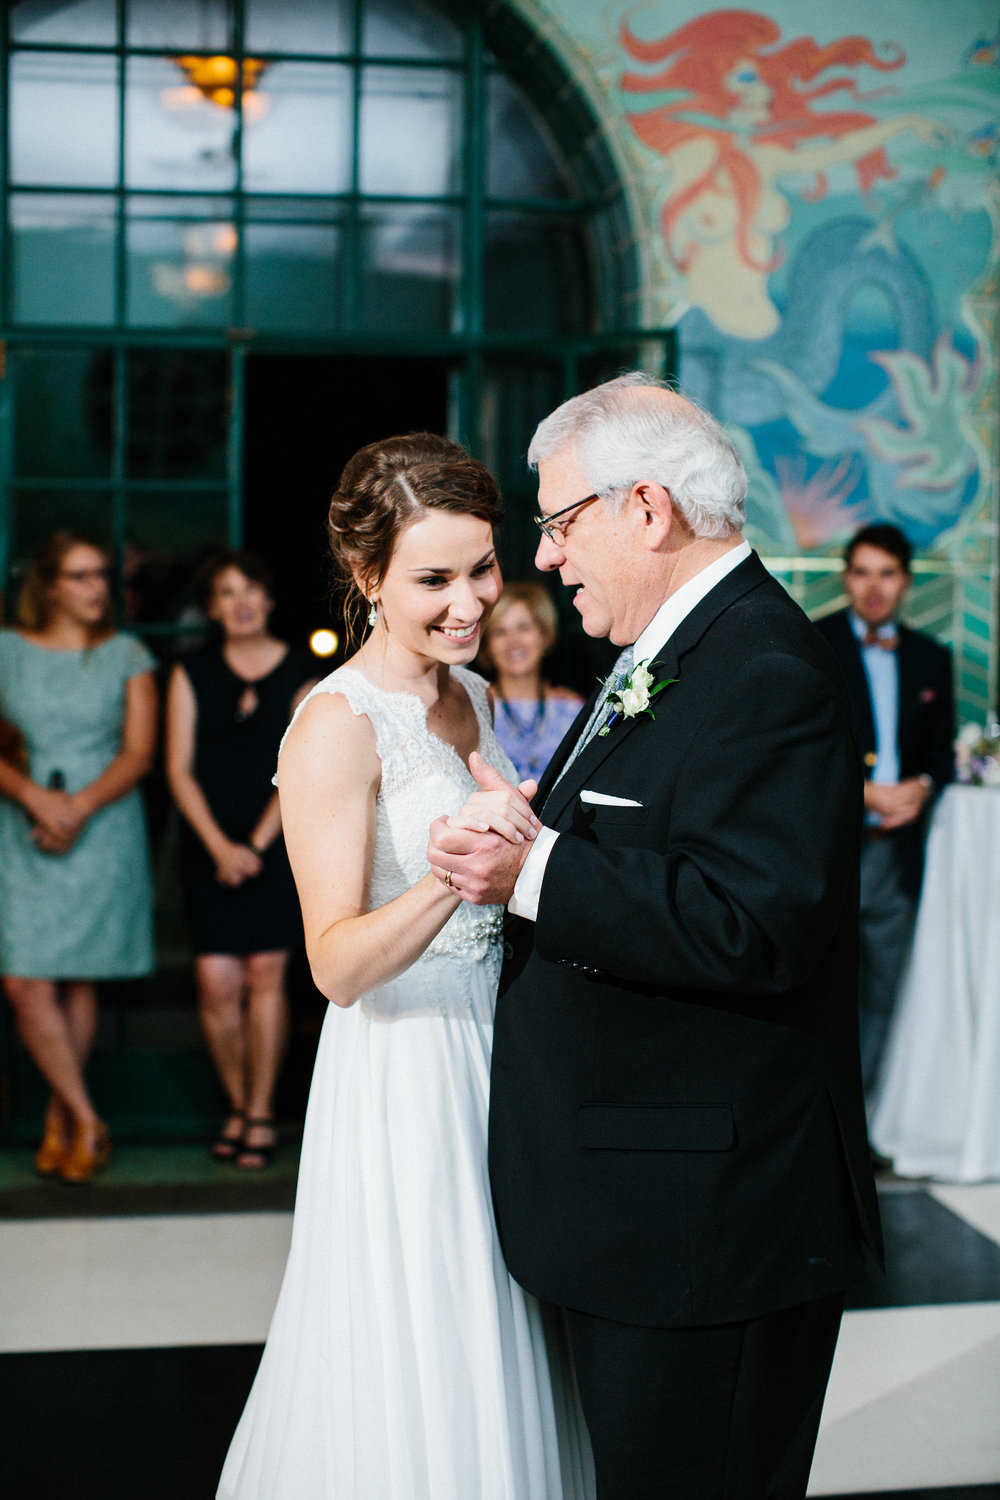 Hill_Reception_ANNAROUTHPHOTOGRAPHY_178.jpg